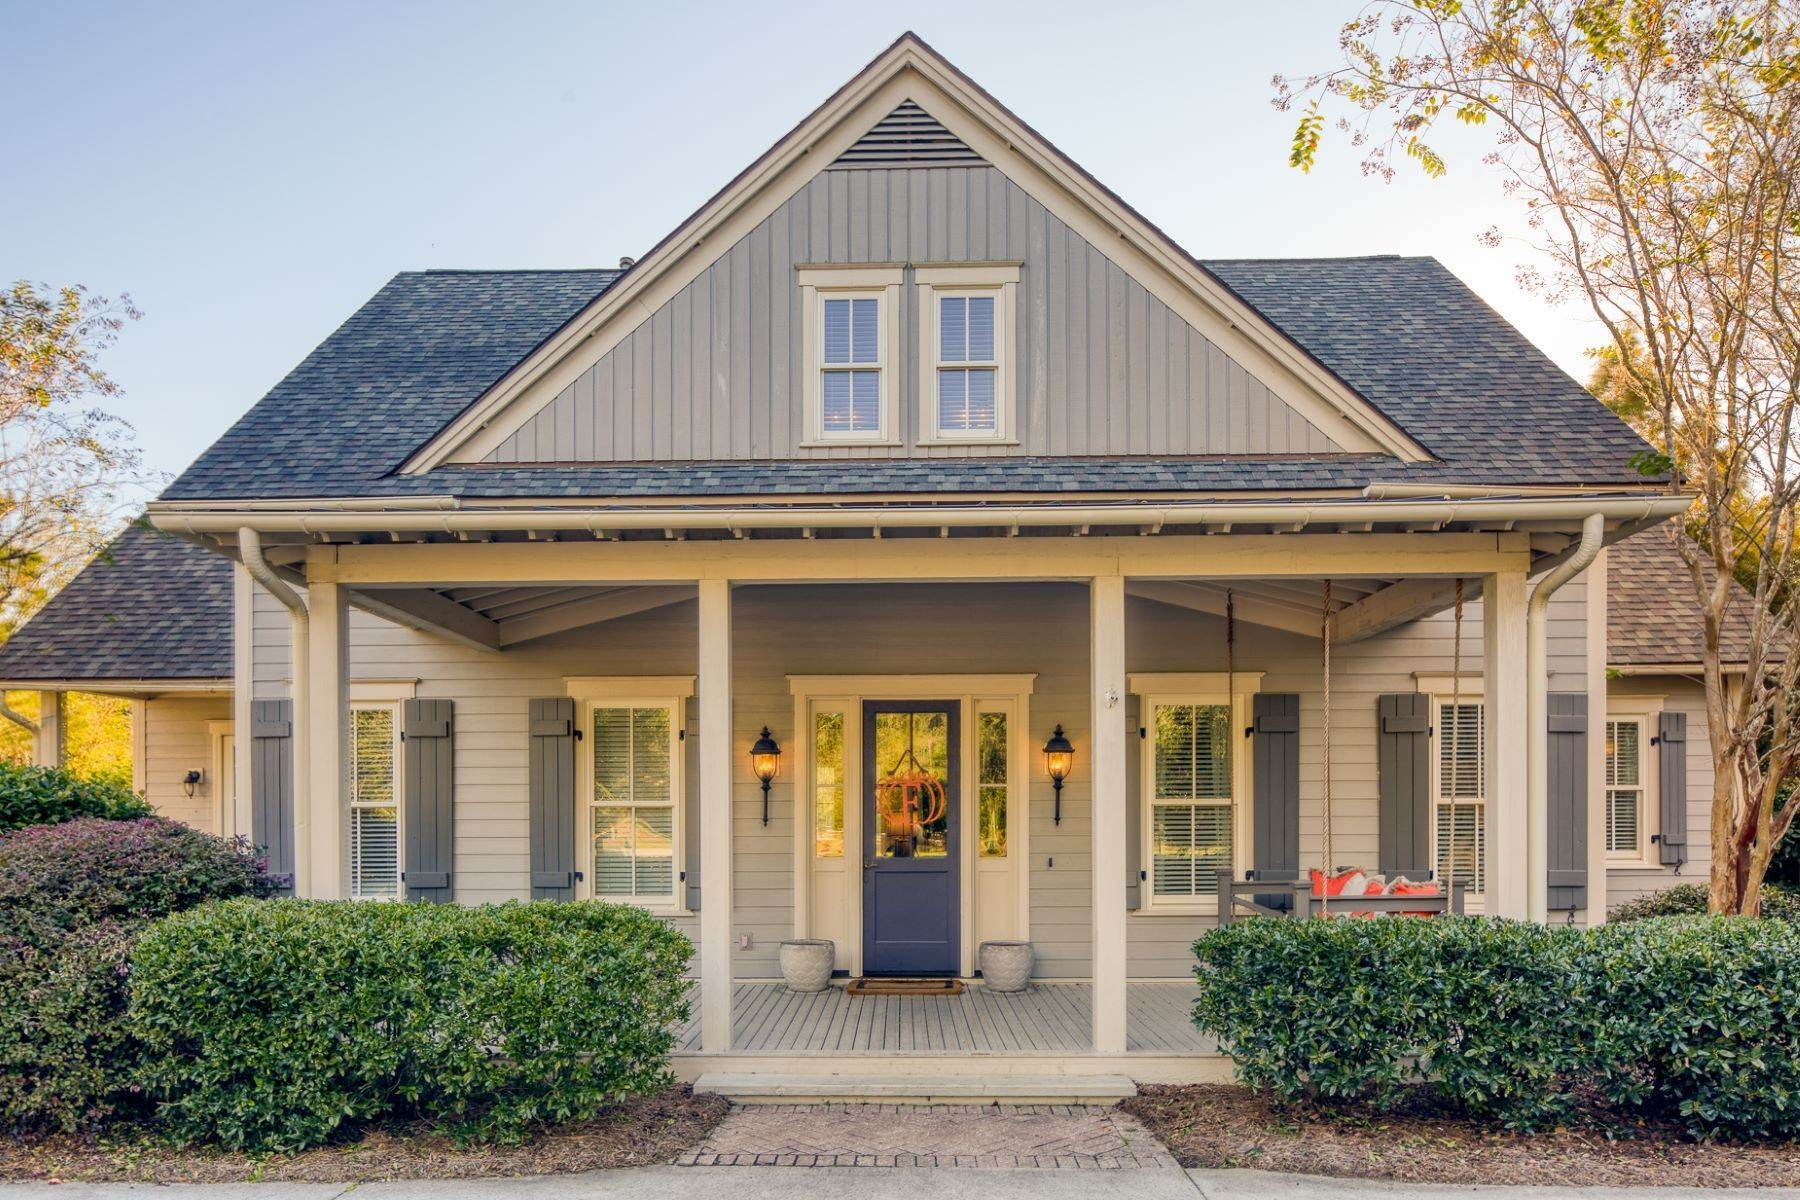 Single Family Homes for Sale at Desirable Gated Community 15 Greeters Lane Okatie, South Carolina 29909 United States